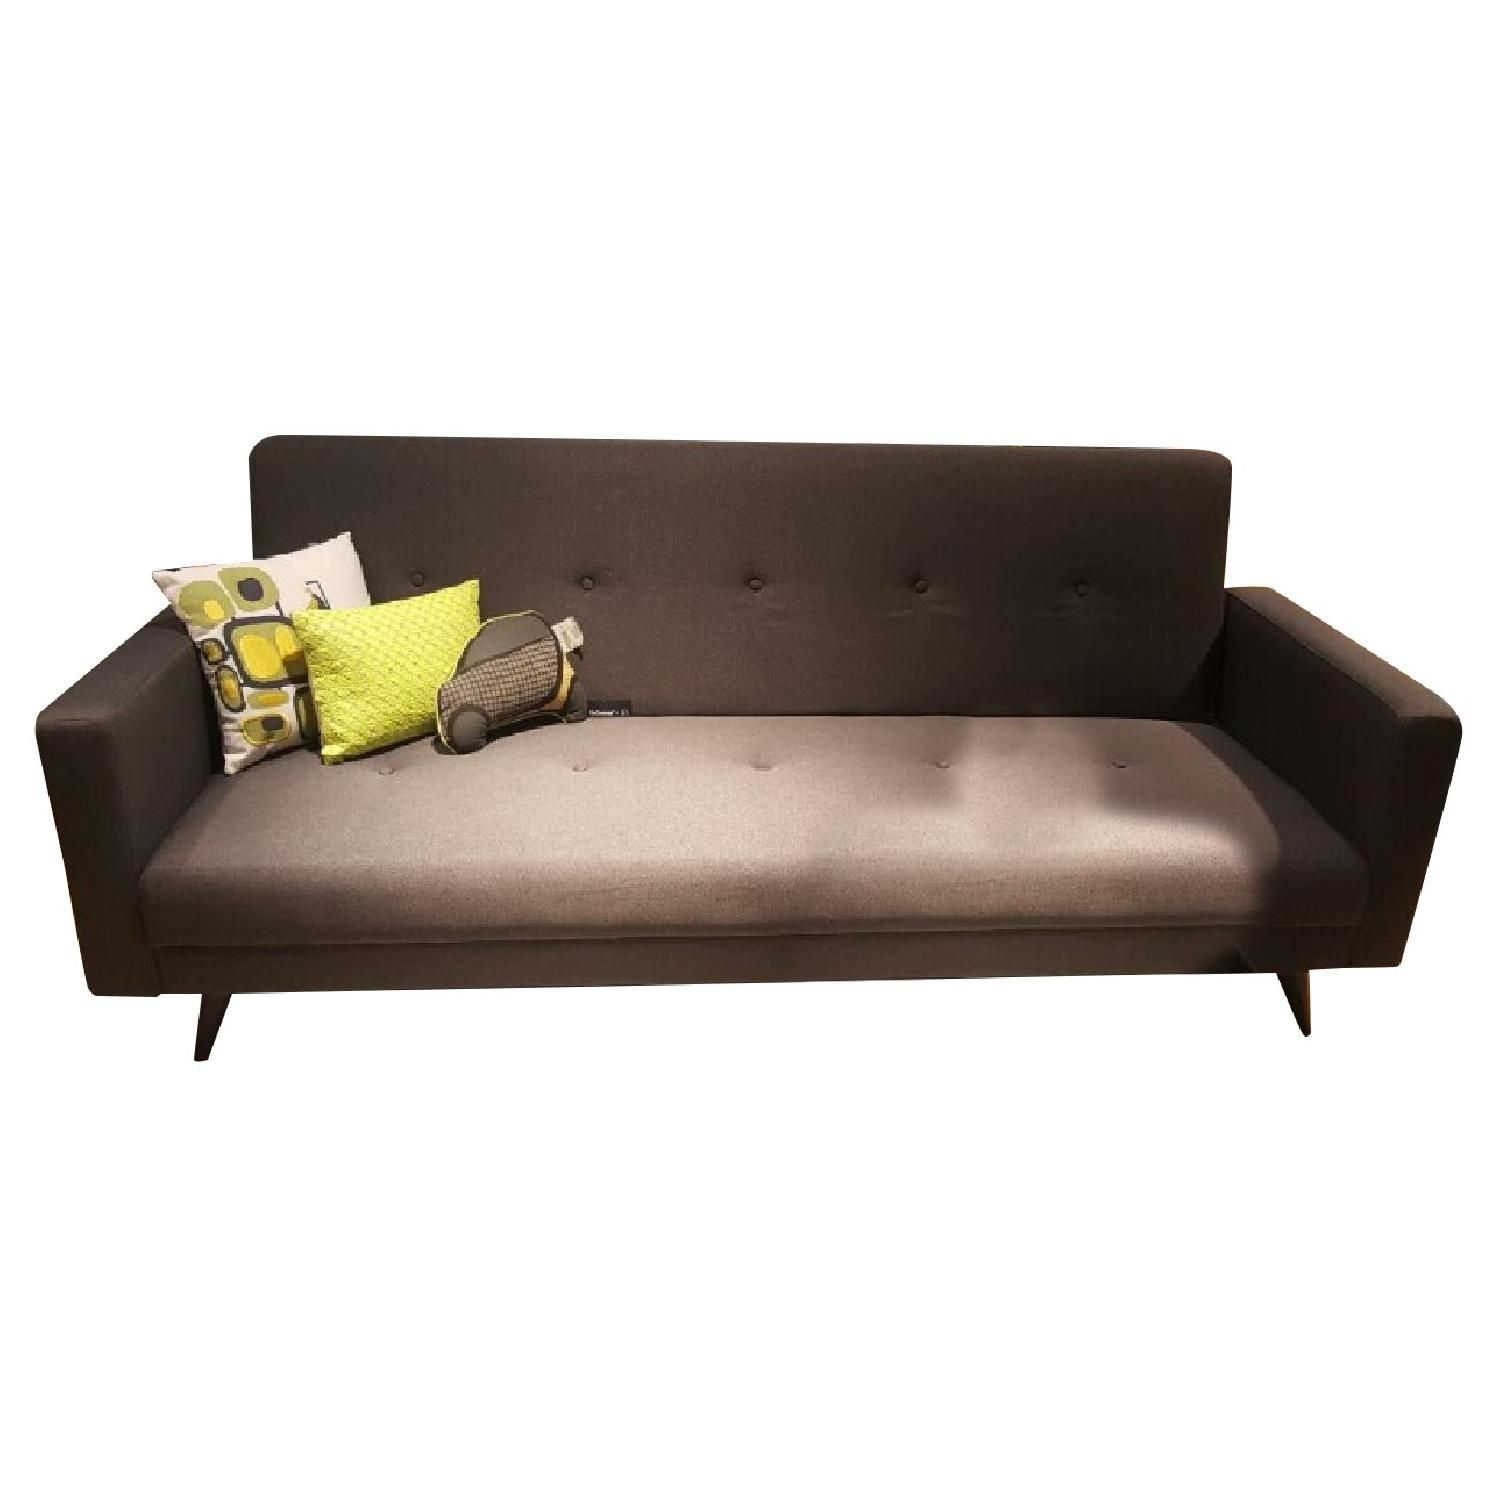 Fantastic Mindy Sofa Bed Decorating Sofa Sofa Bed Second Hand Sofas Alphanode Cool Chair Designs And Ideas Alphanodeonline